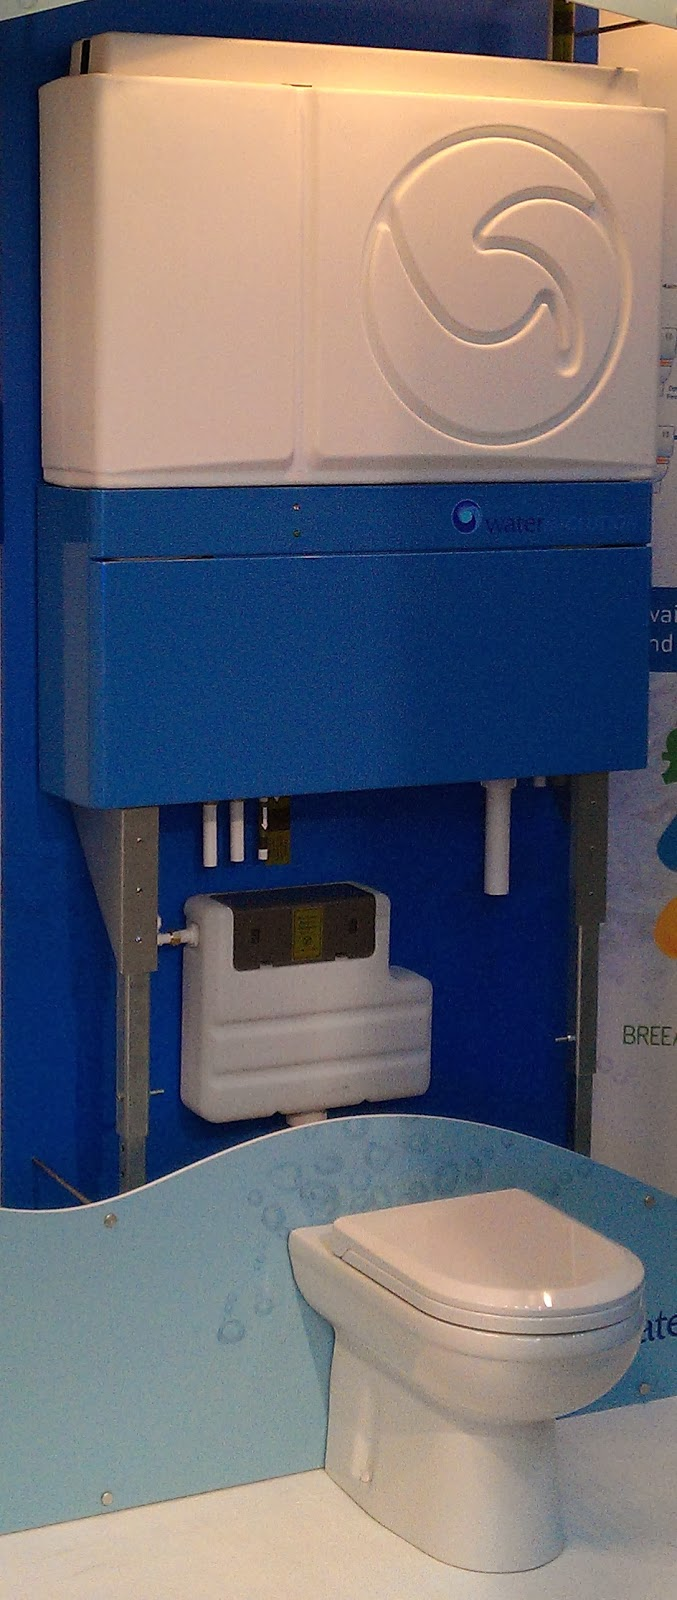 Eco-toilets reduce household water consumption